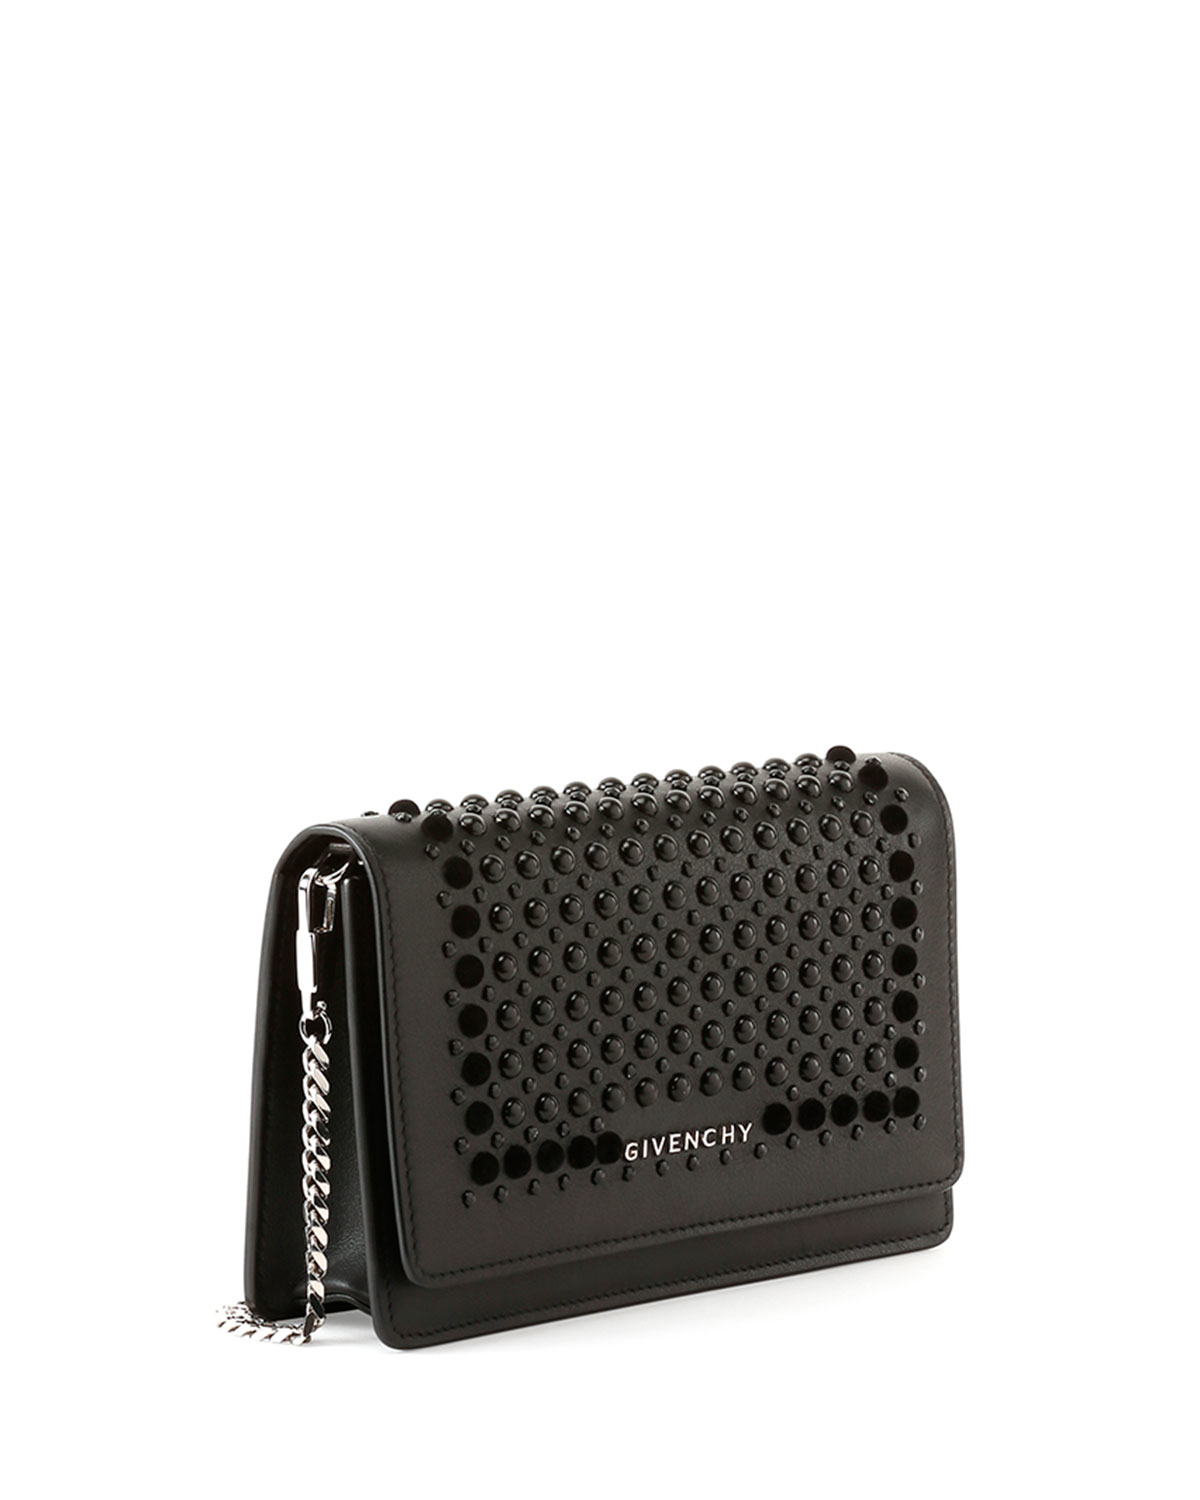 Lyst - Givenchy Pandora Studded Wallet-on-a-chain in Black 0e57c0885c4a1